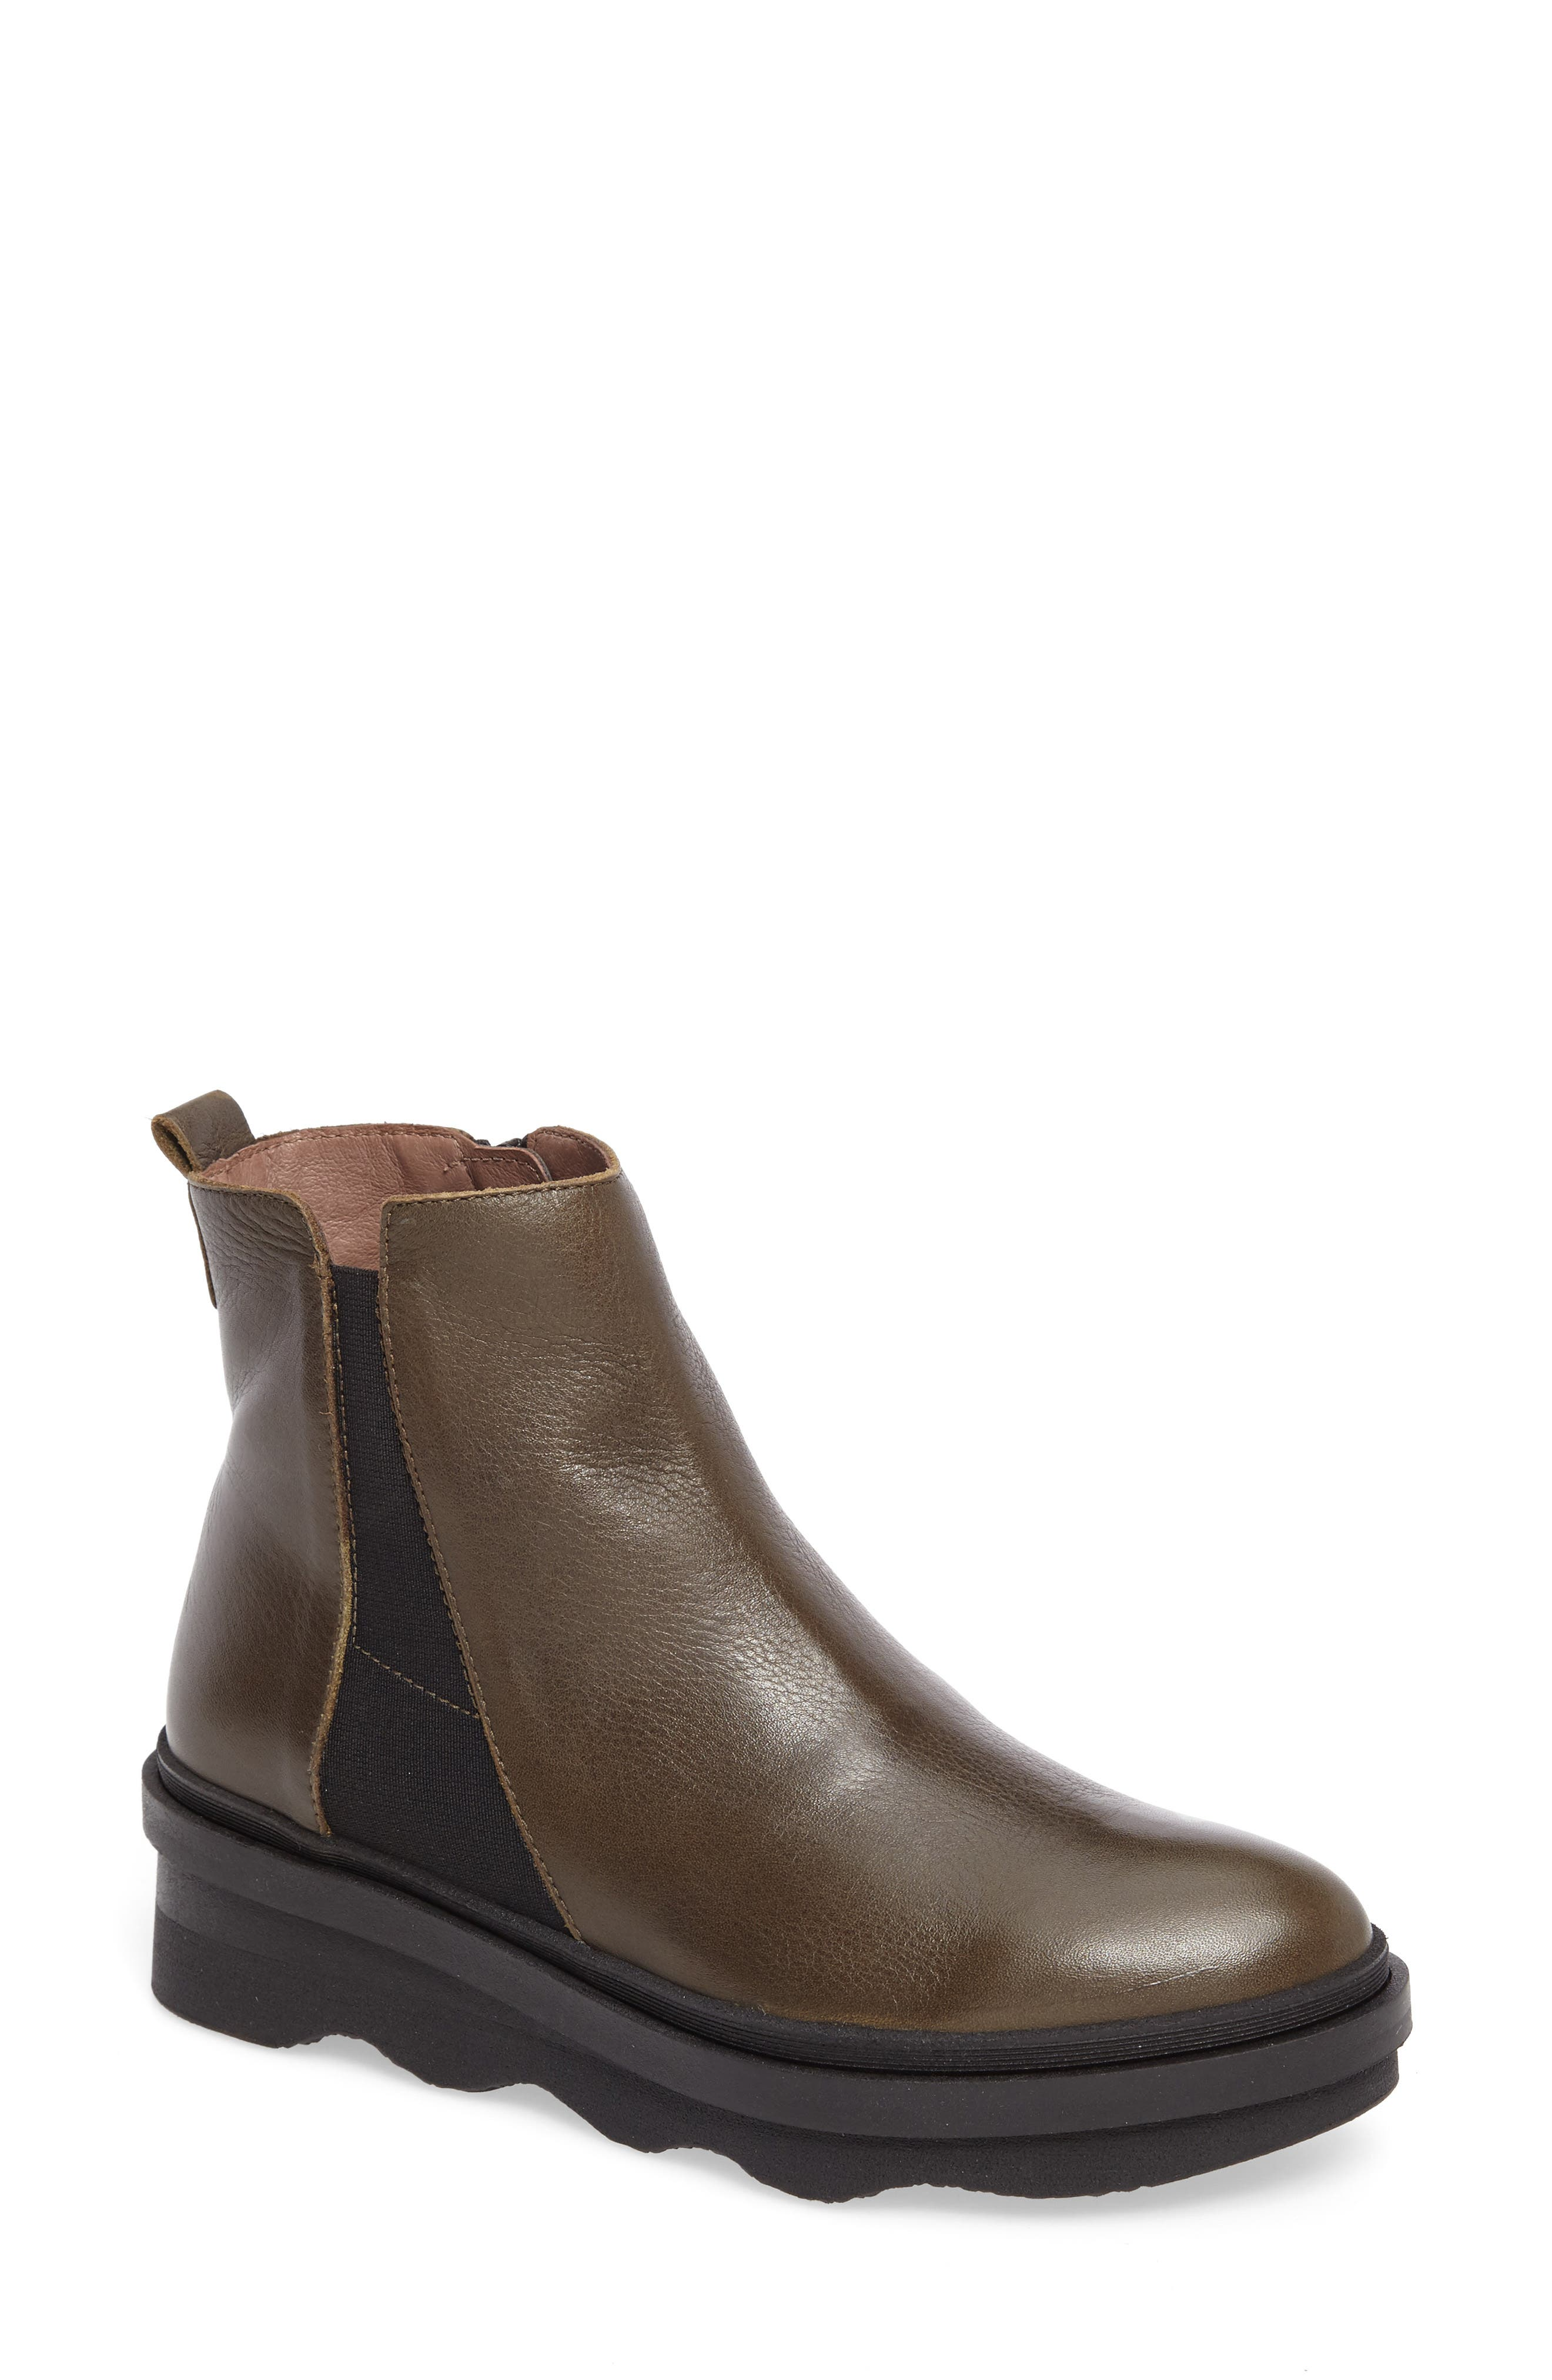 Platform Chelsea Bootie,                         Main,                         color, Khaki Leather